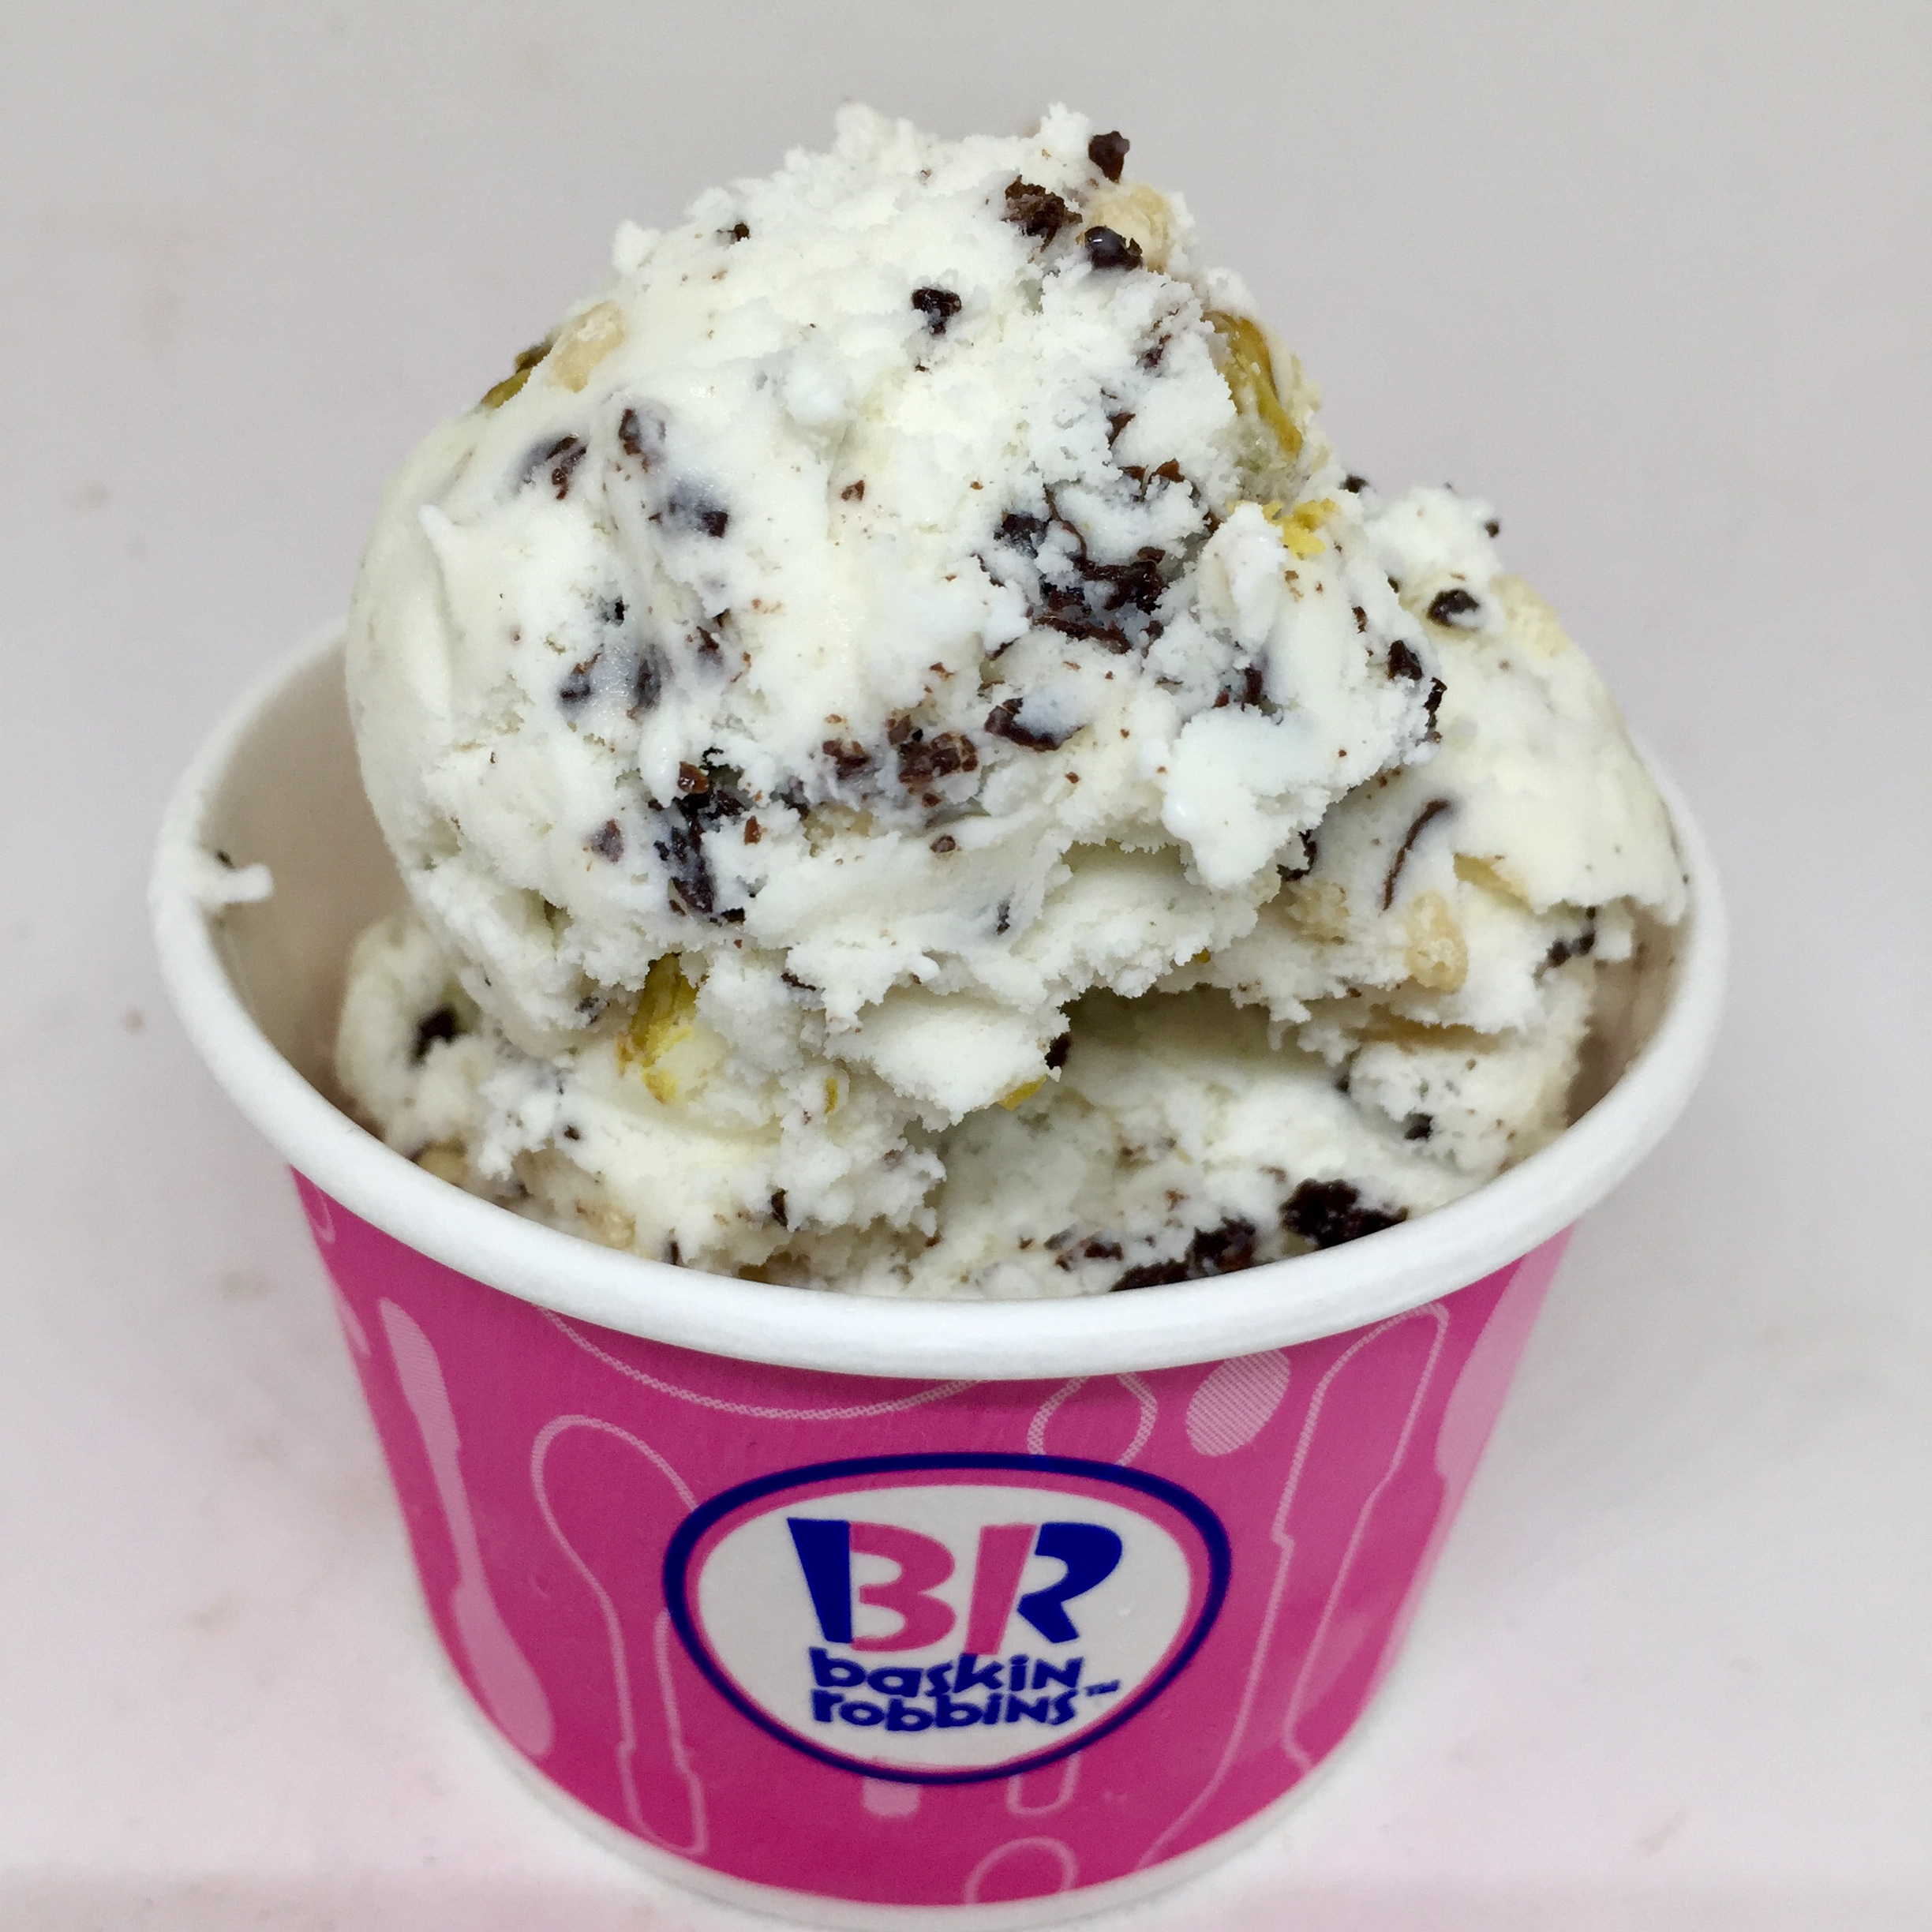 baskin robbins flavor of the month Baskin robbins is the world's largest chain of ice cream specialty stores, with 6,000 retail stores in over 35 countries around the globe the brand is famous for its unrivalled, ever-growing library of ice cream flavors with the innovative program 'flavor of the month' to introduce a new flavor every month, baskin robbins has created an exciting collection of nearly 1,000 ice cream flavors '31' commemorates the company's inspiration to offer a different ice cream flavor for each day of.